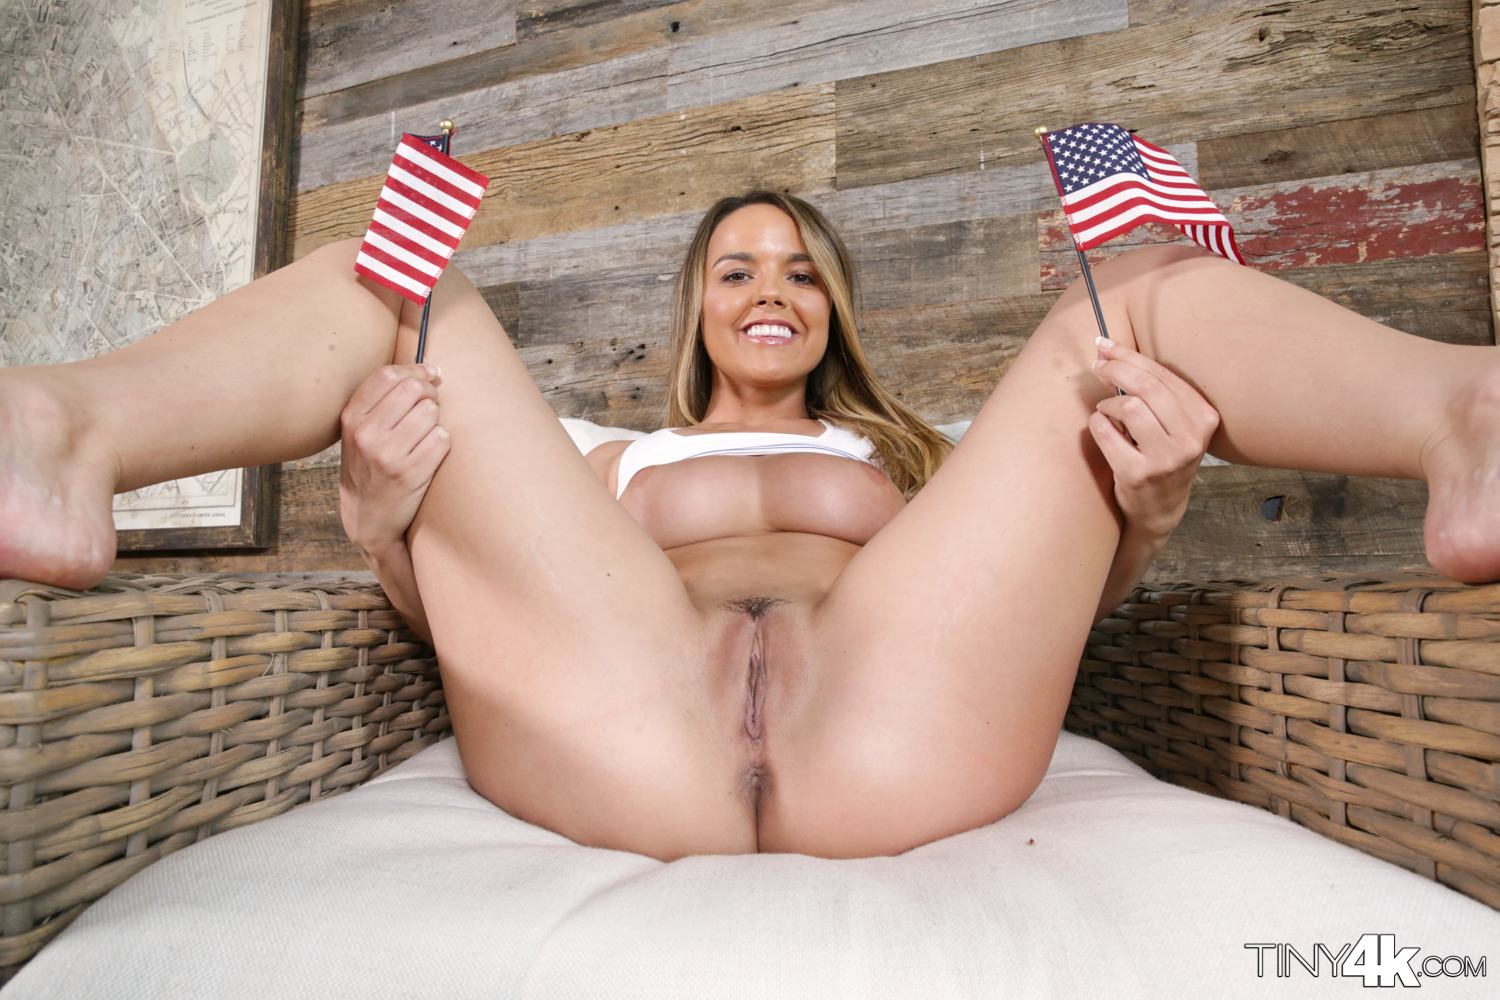 Best off lucky 4th shoot boobs mexico incredible topless 6